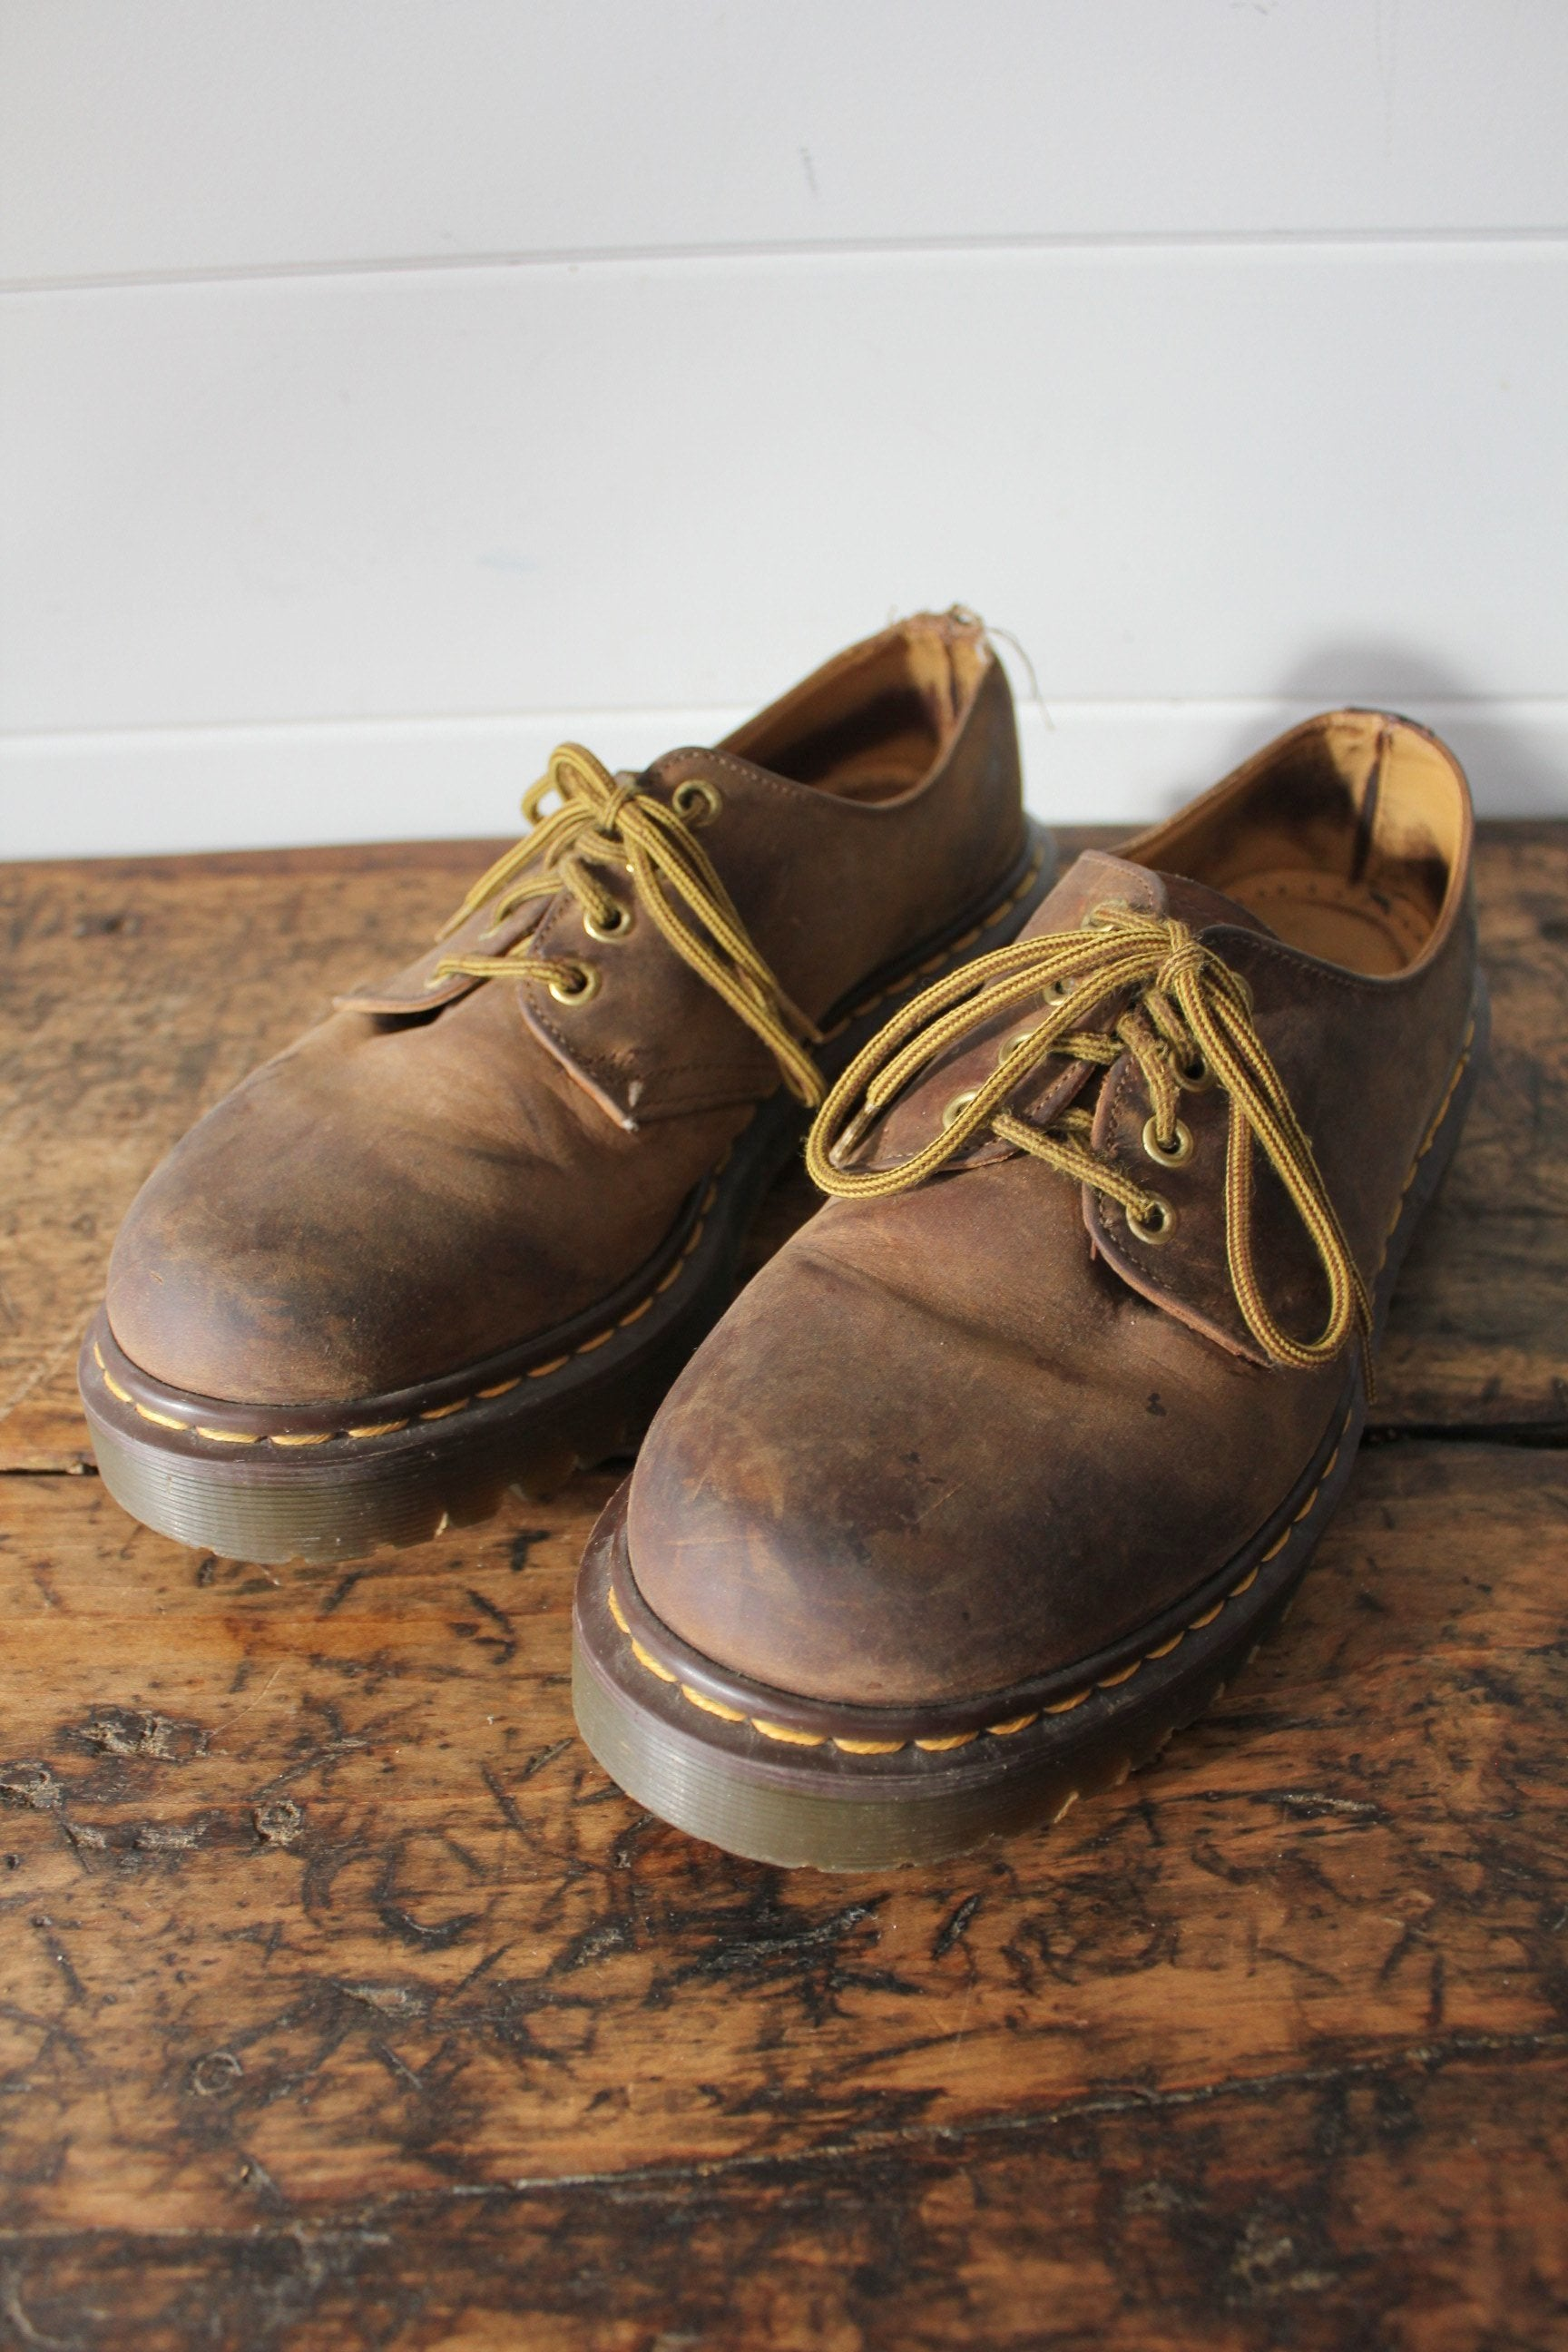 Doc Martin Boots - Diamonds & Rust